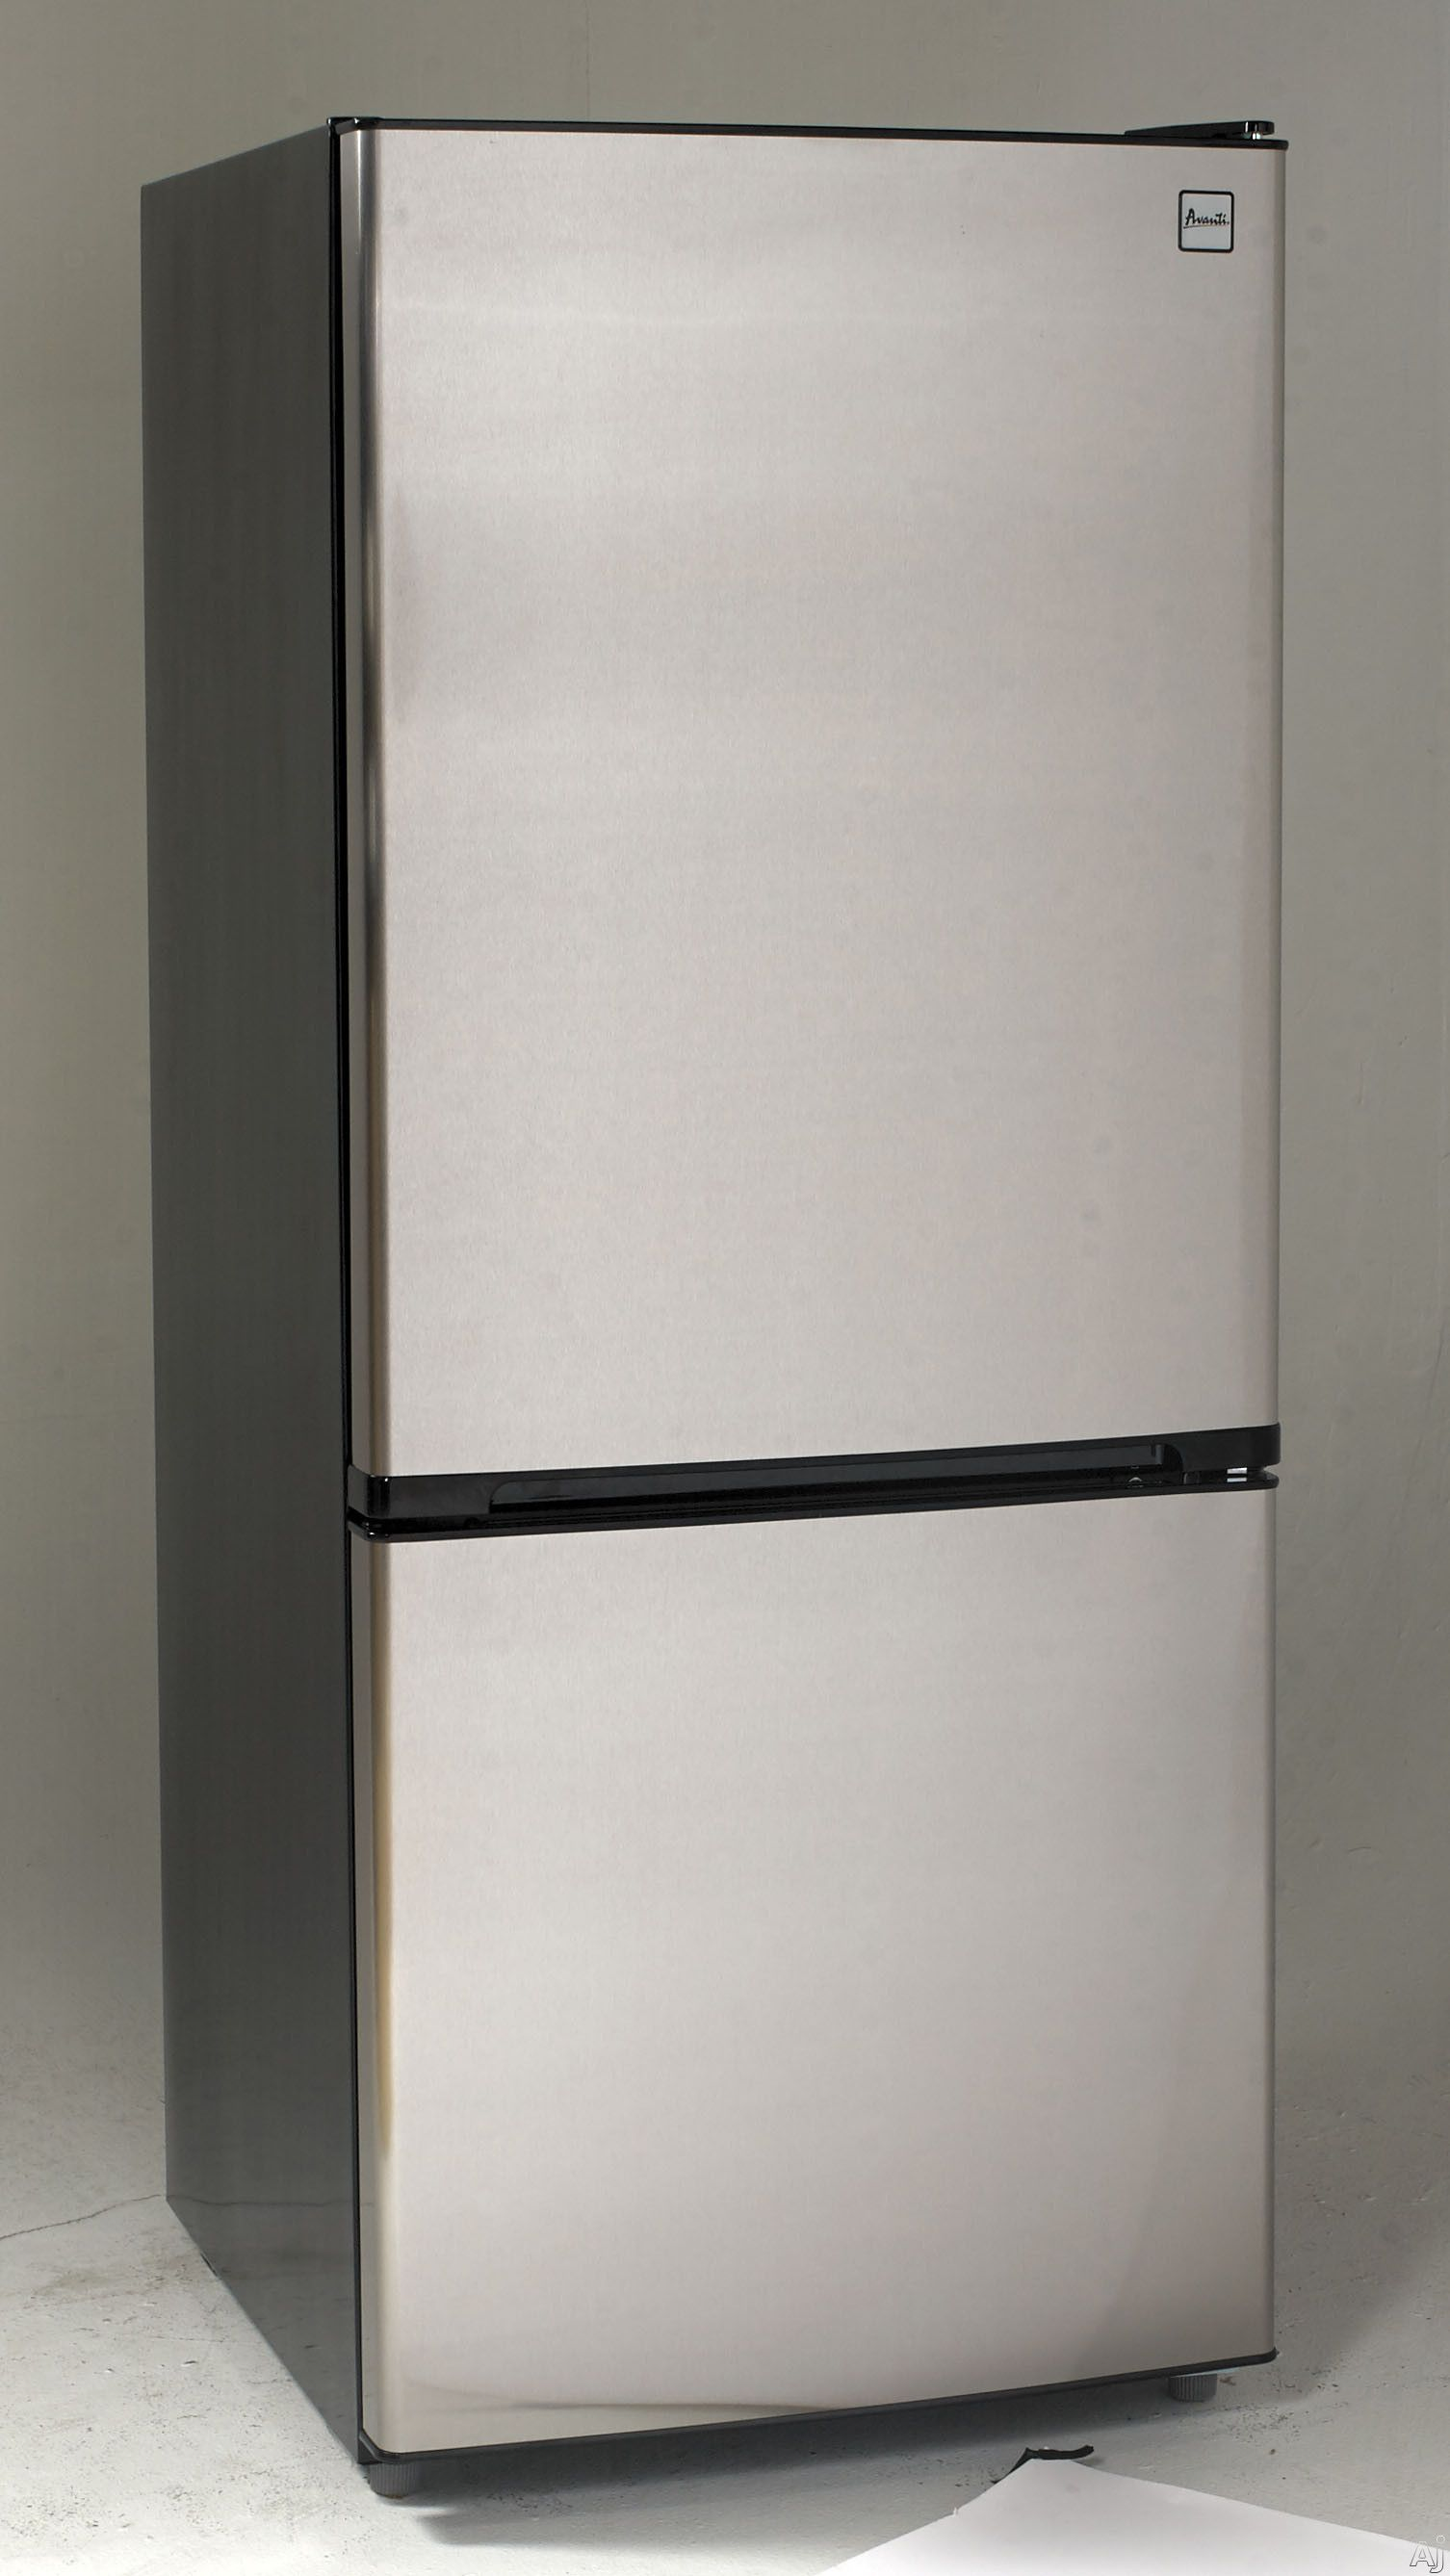 closed product steelock lock catch drawer fridge s freezer palma penguin sea ss site litre